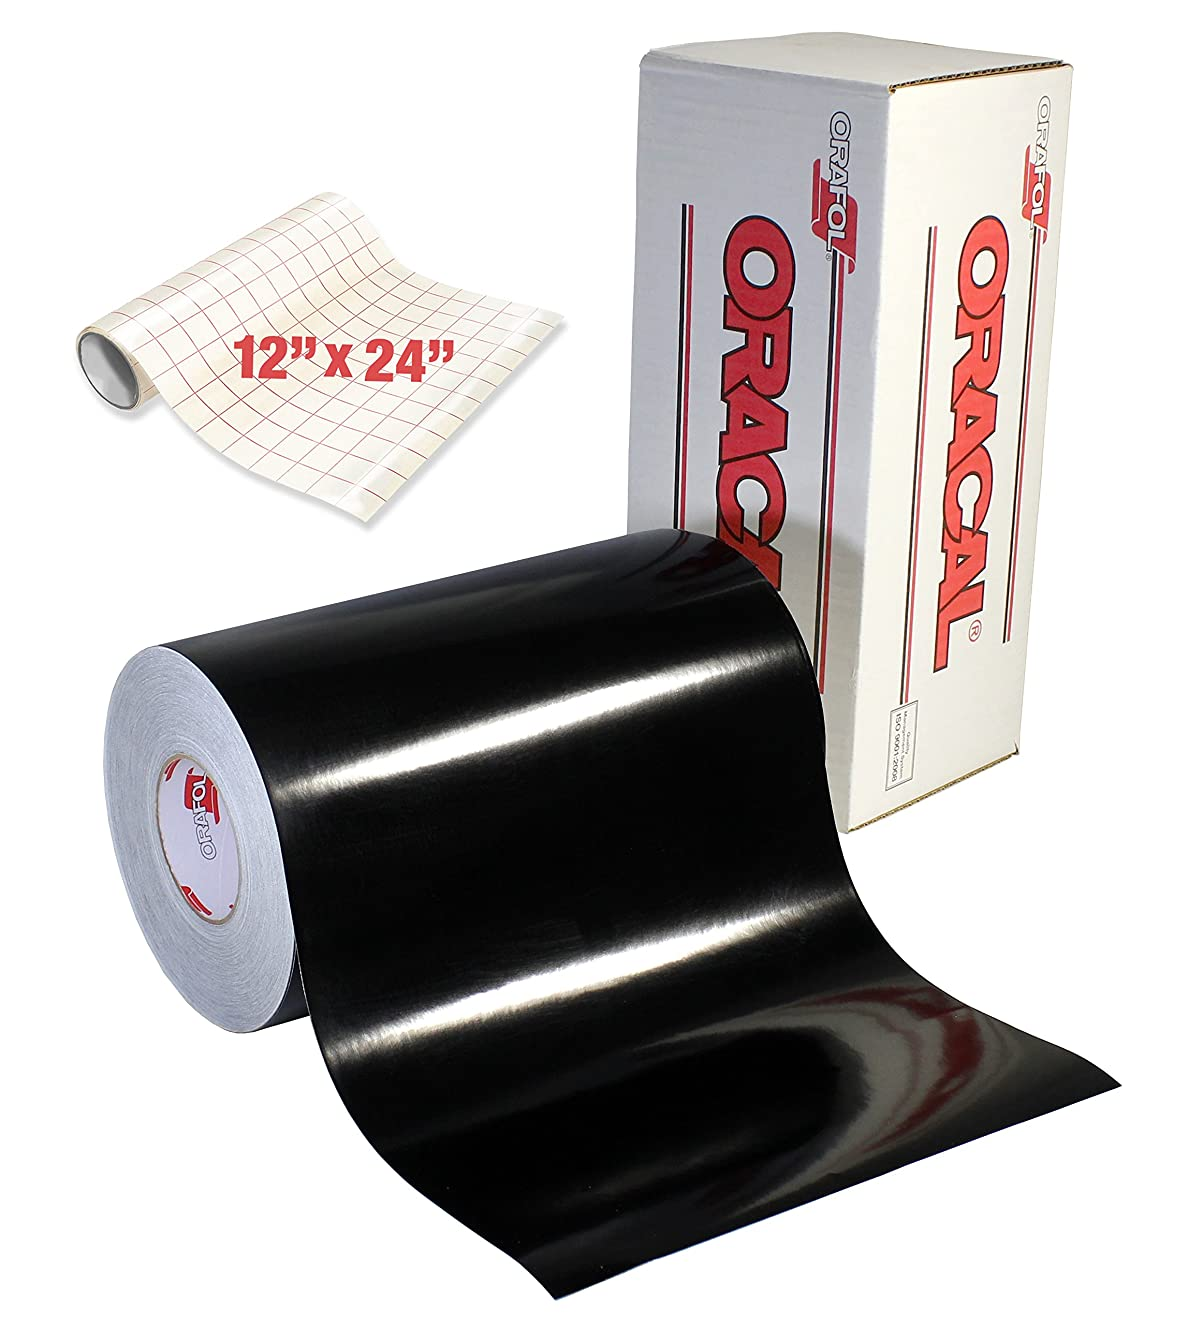 ORACAL 651 Gloss Black Self-Adhesive Craft Vinyl Roll (12